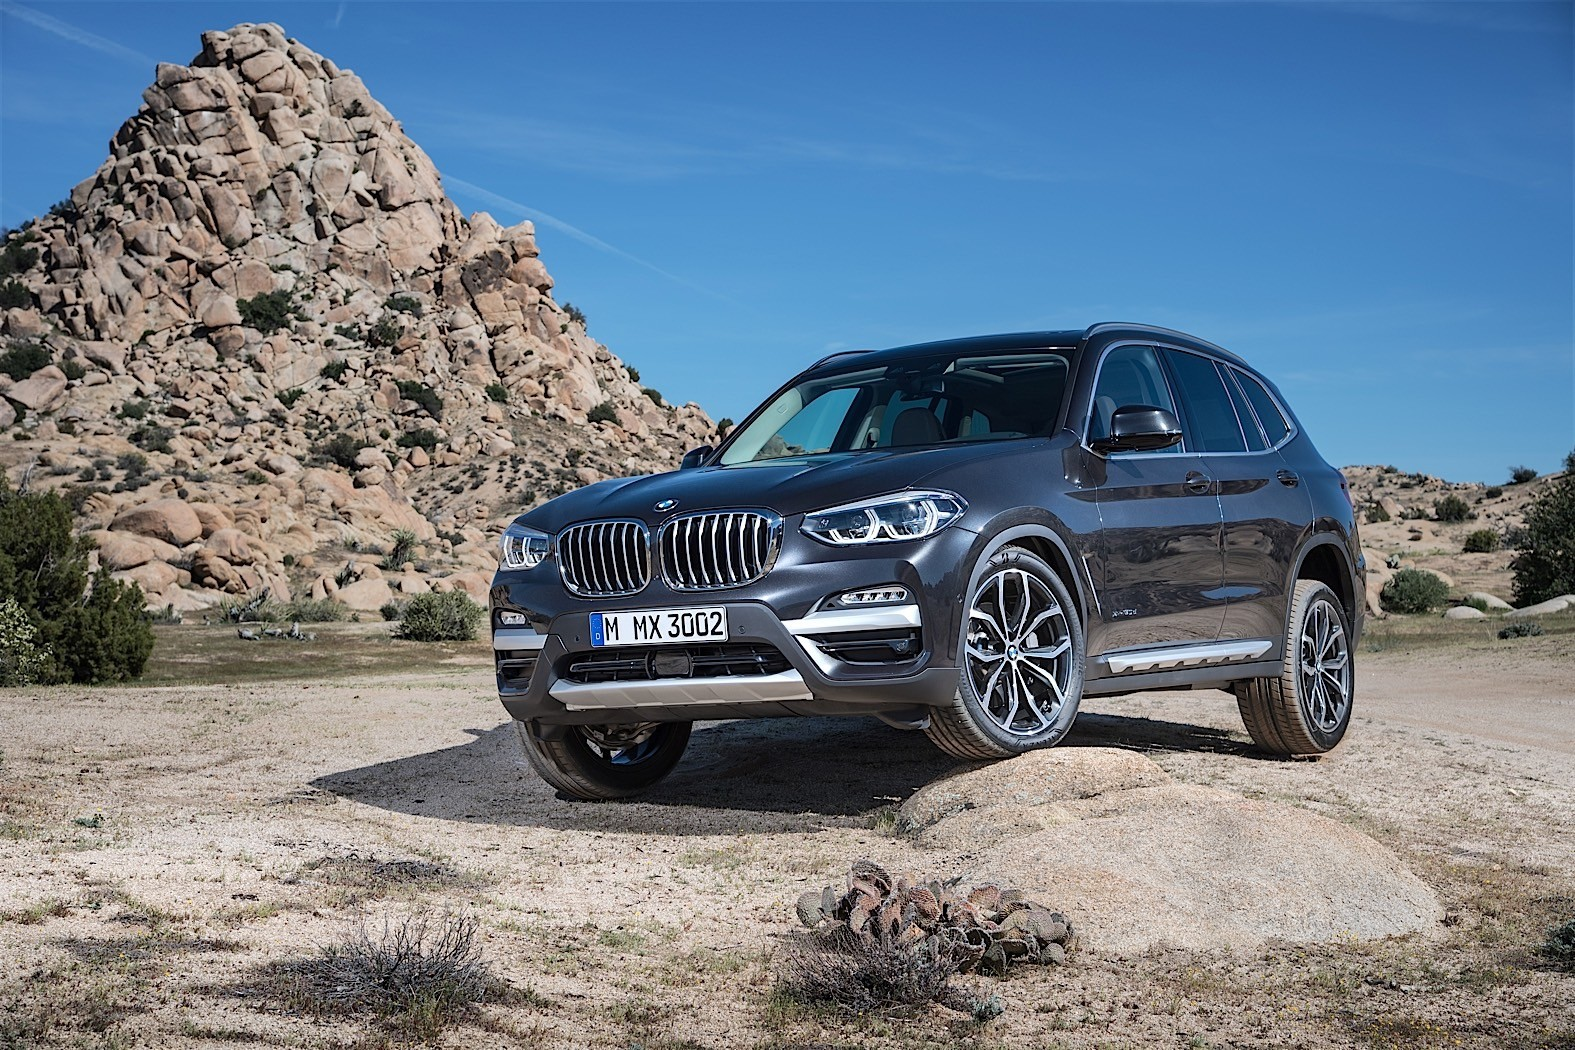 2018 BMW X3 (G01) Priced In The U.S. From $42,450 For The ...